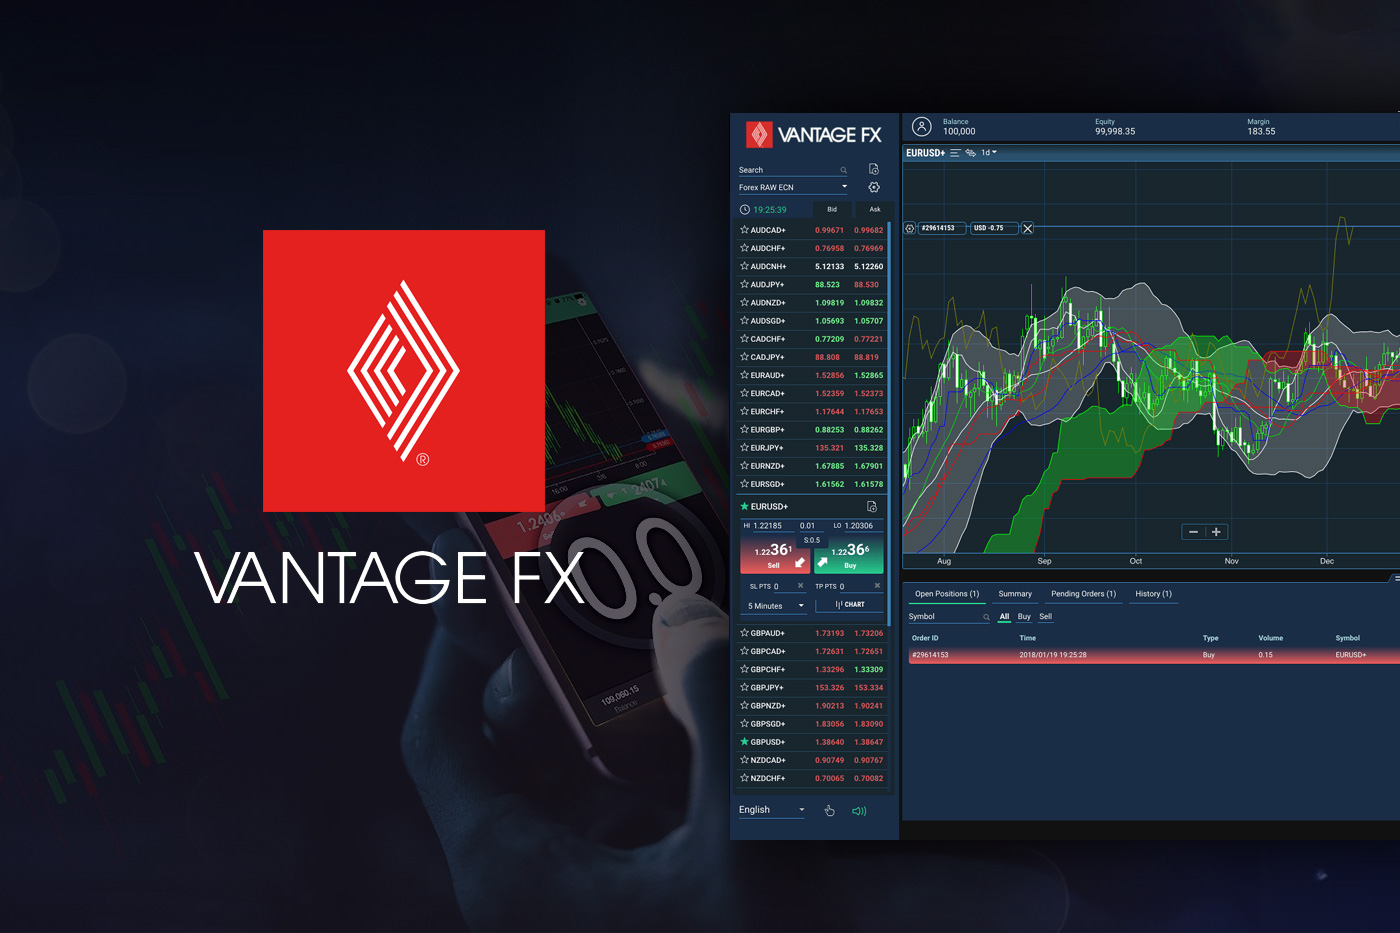 Vantage fx binary options demo